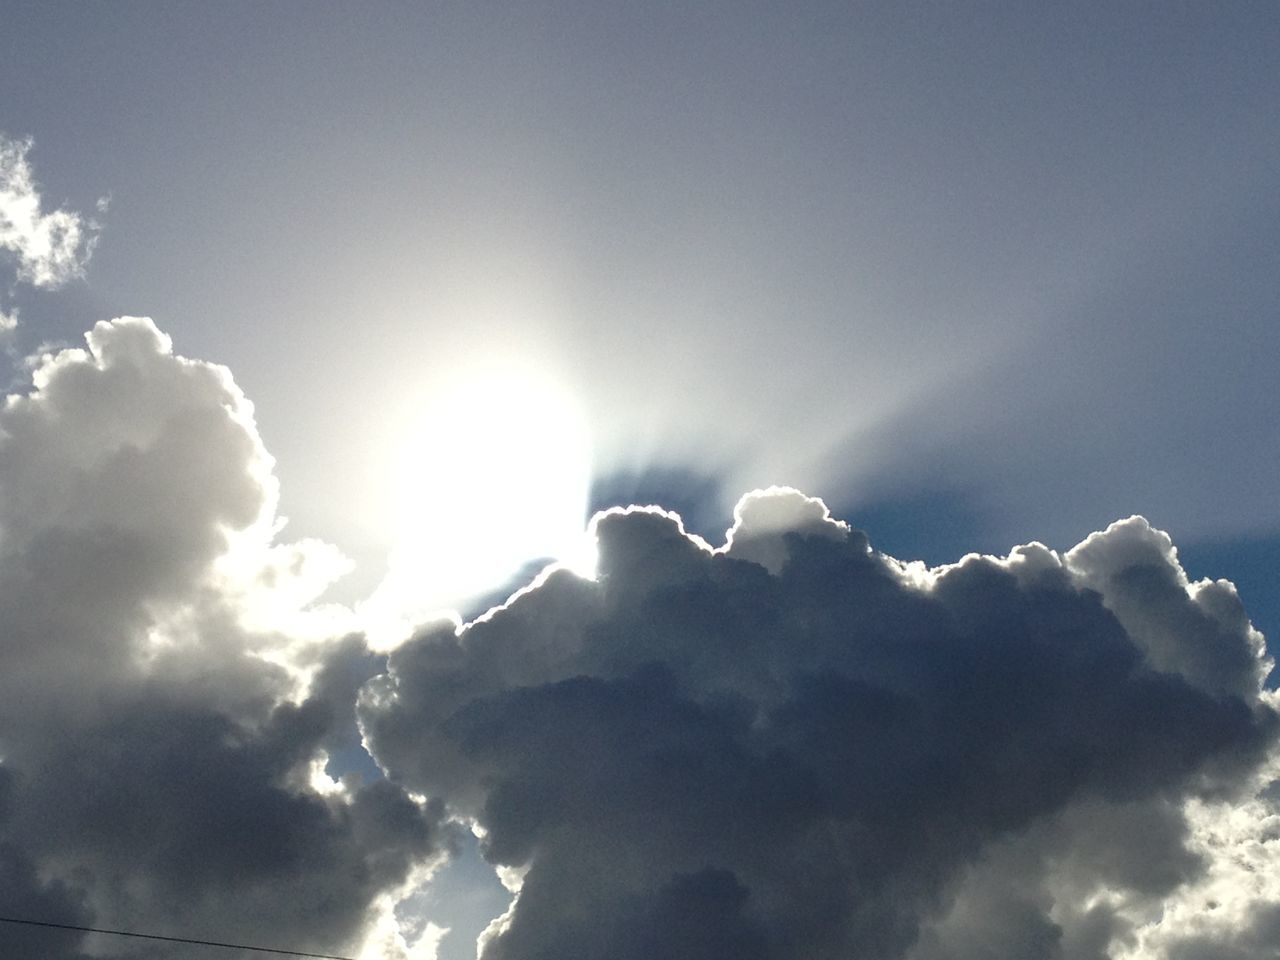 beauty in nature, nature, sunbeam, sky, cloud - sky, low angle view, sky only, scenics, majestic, backgrounds, sun, cloudscape, tranquility, sunlight, weather, heaven, no people, outdoors, day